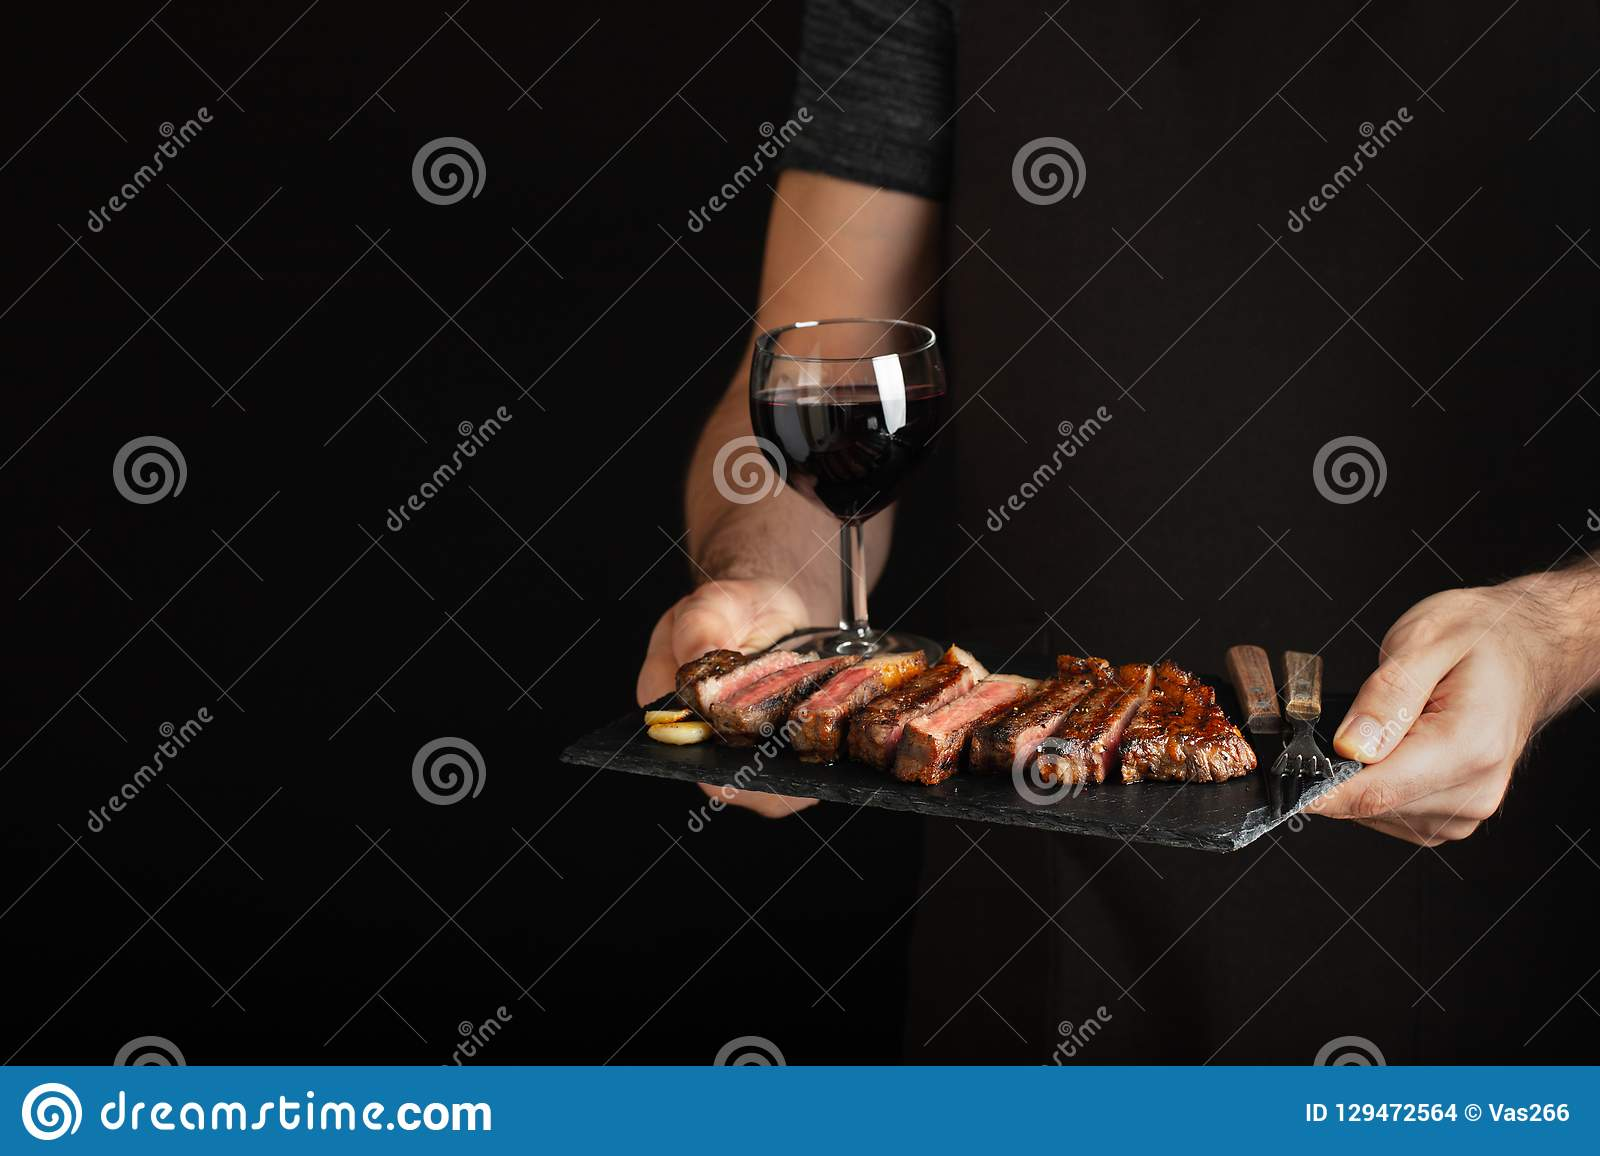 Man holding juicy grilled beef steak with spices and red wine glass on a stone cutting board on a black background. With